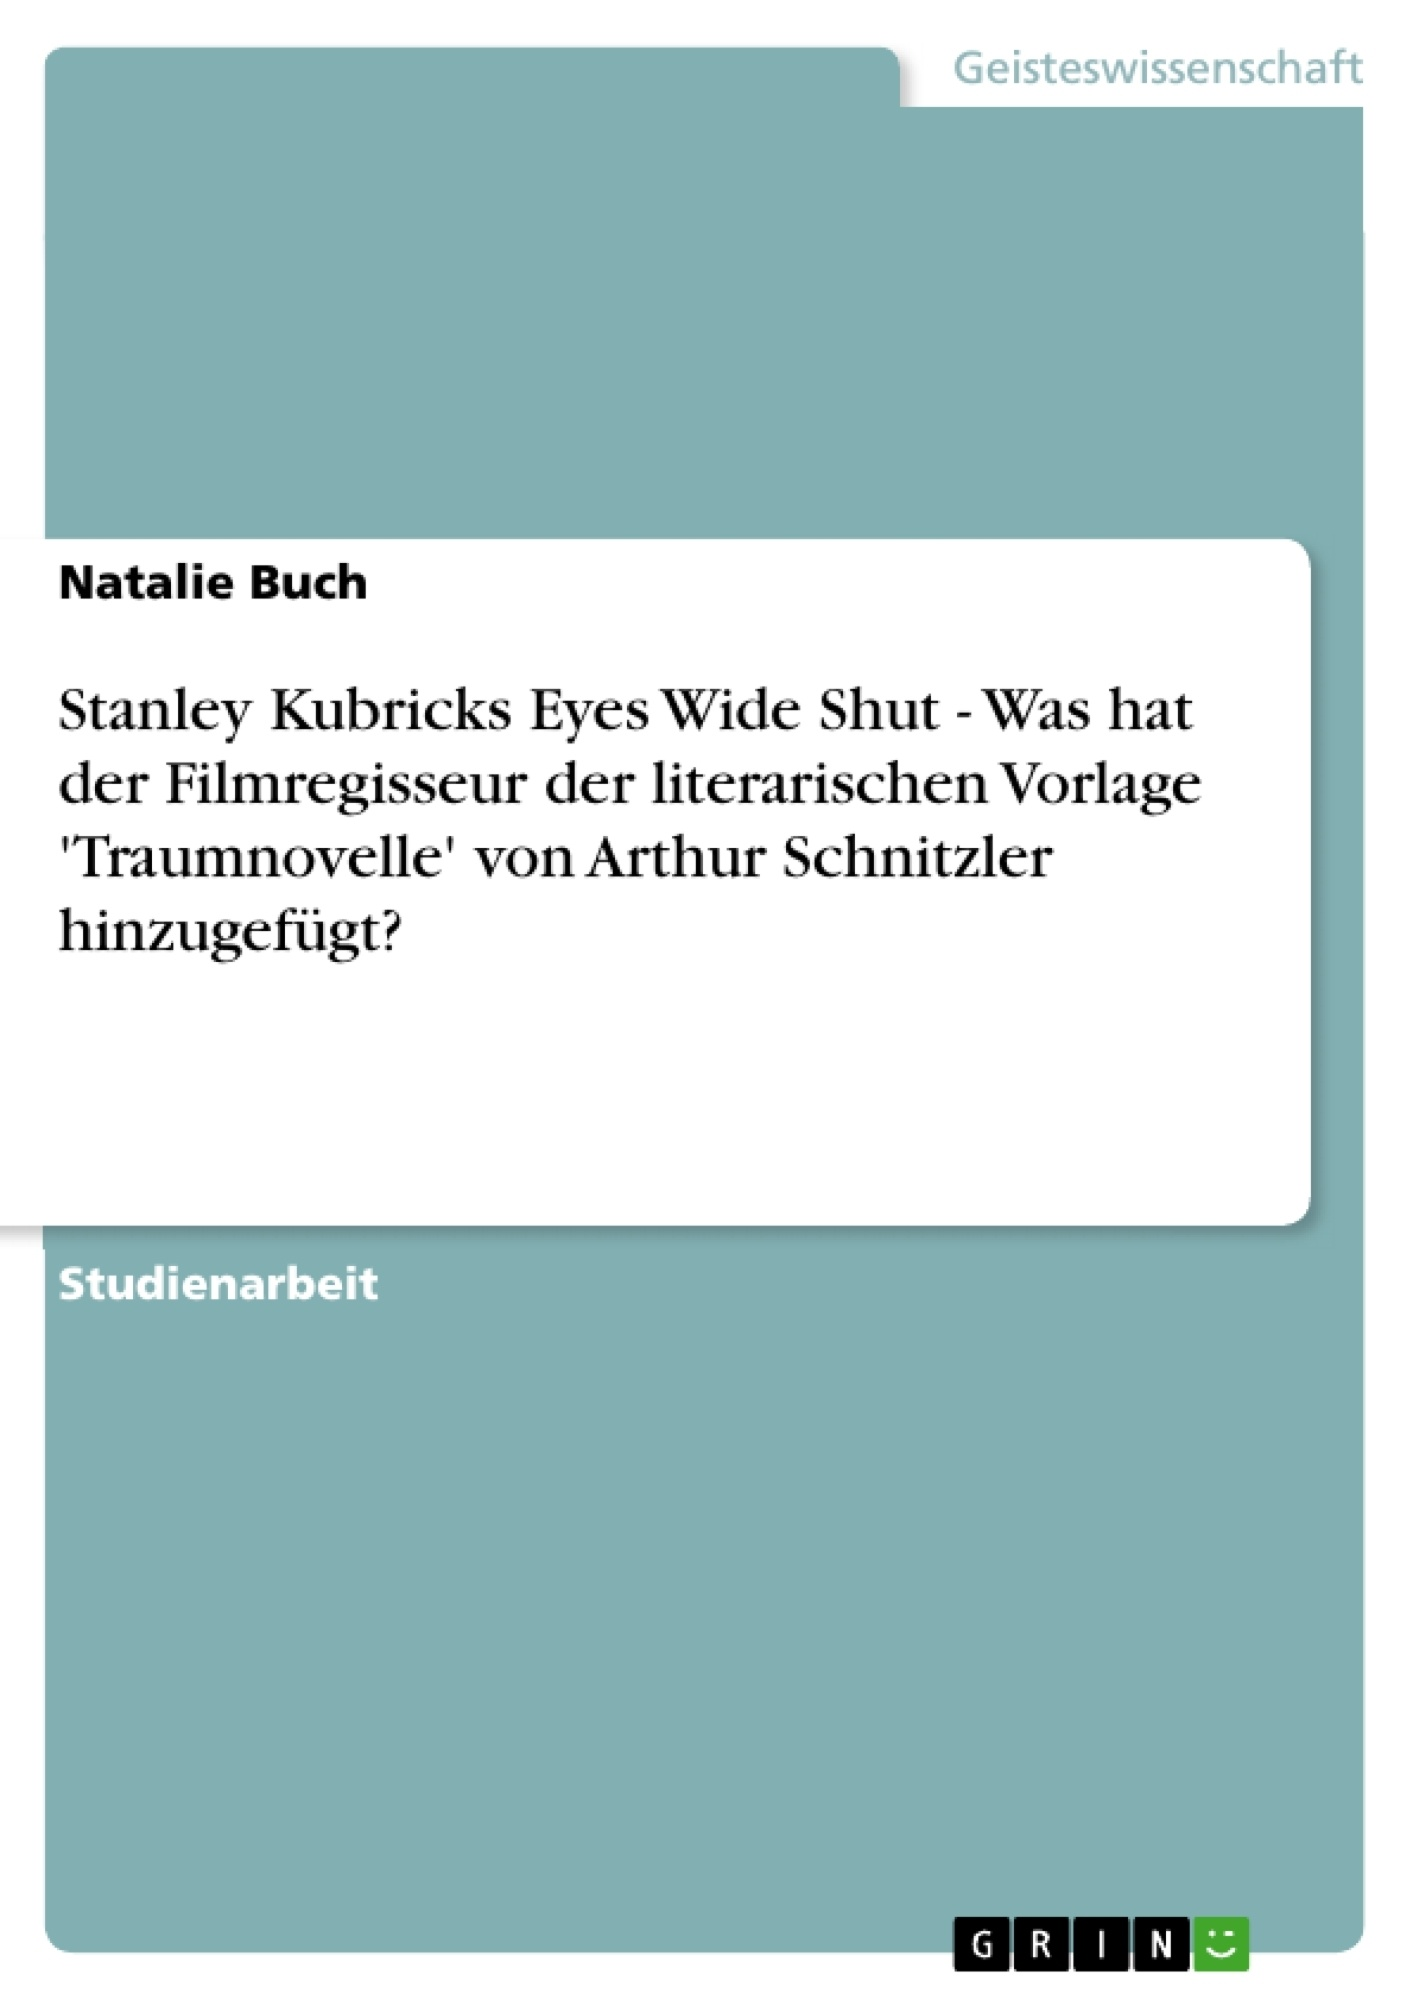 Wunderbar Ww2 Ration Buch Vorlage Ideen - Entry Level Resume ...